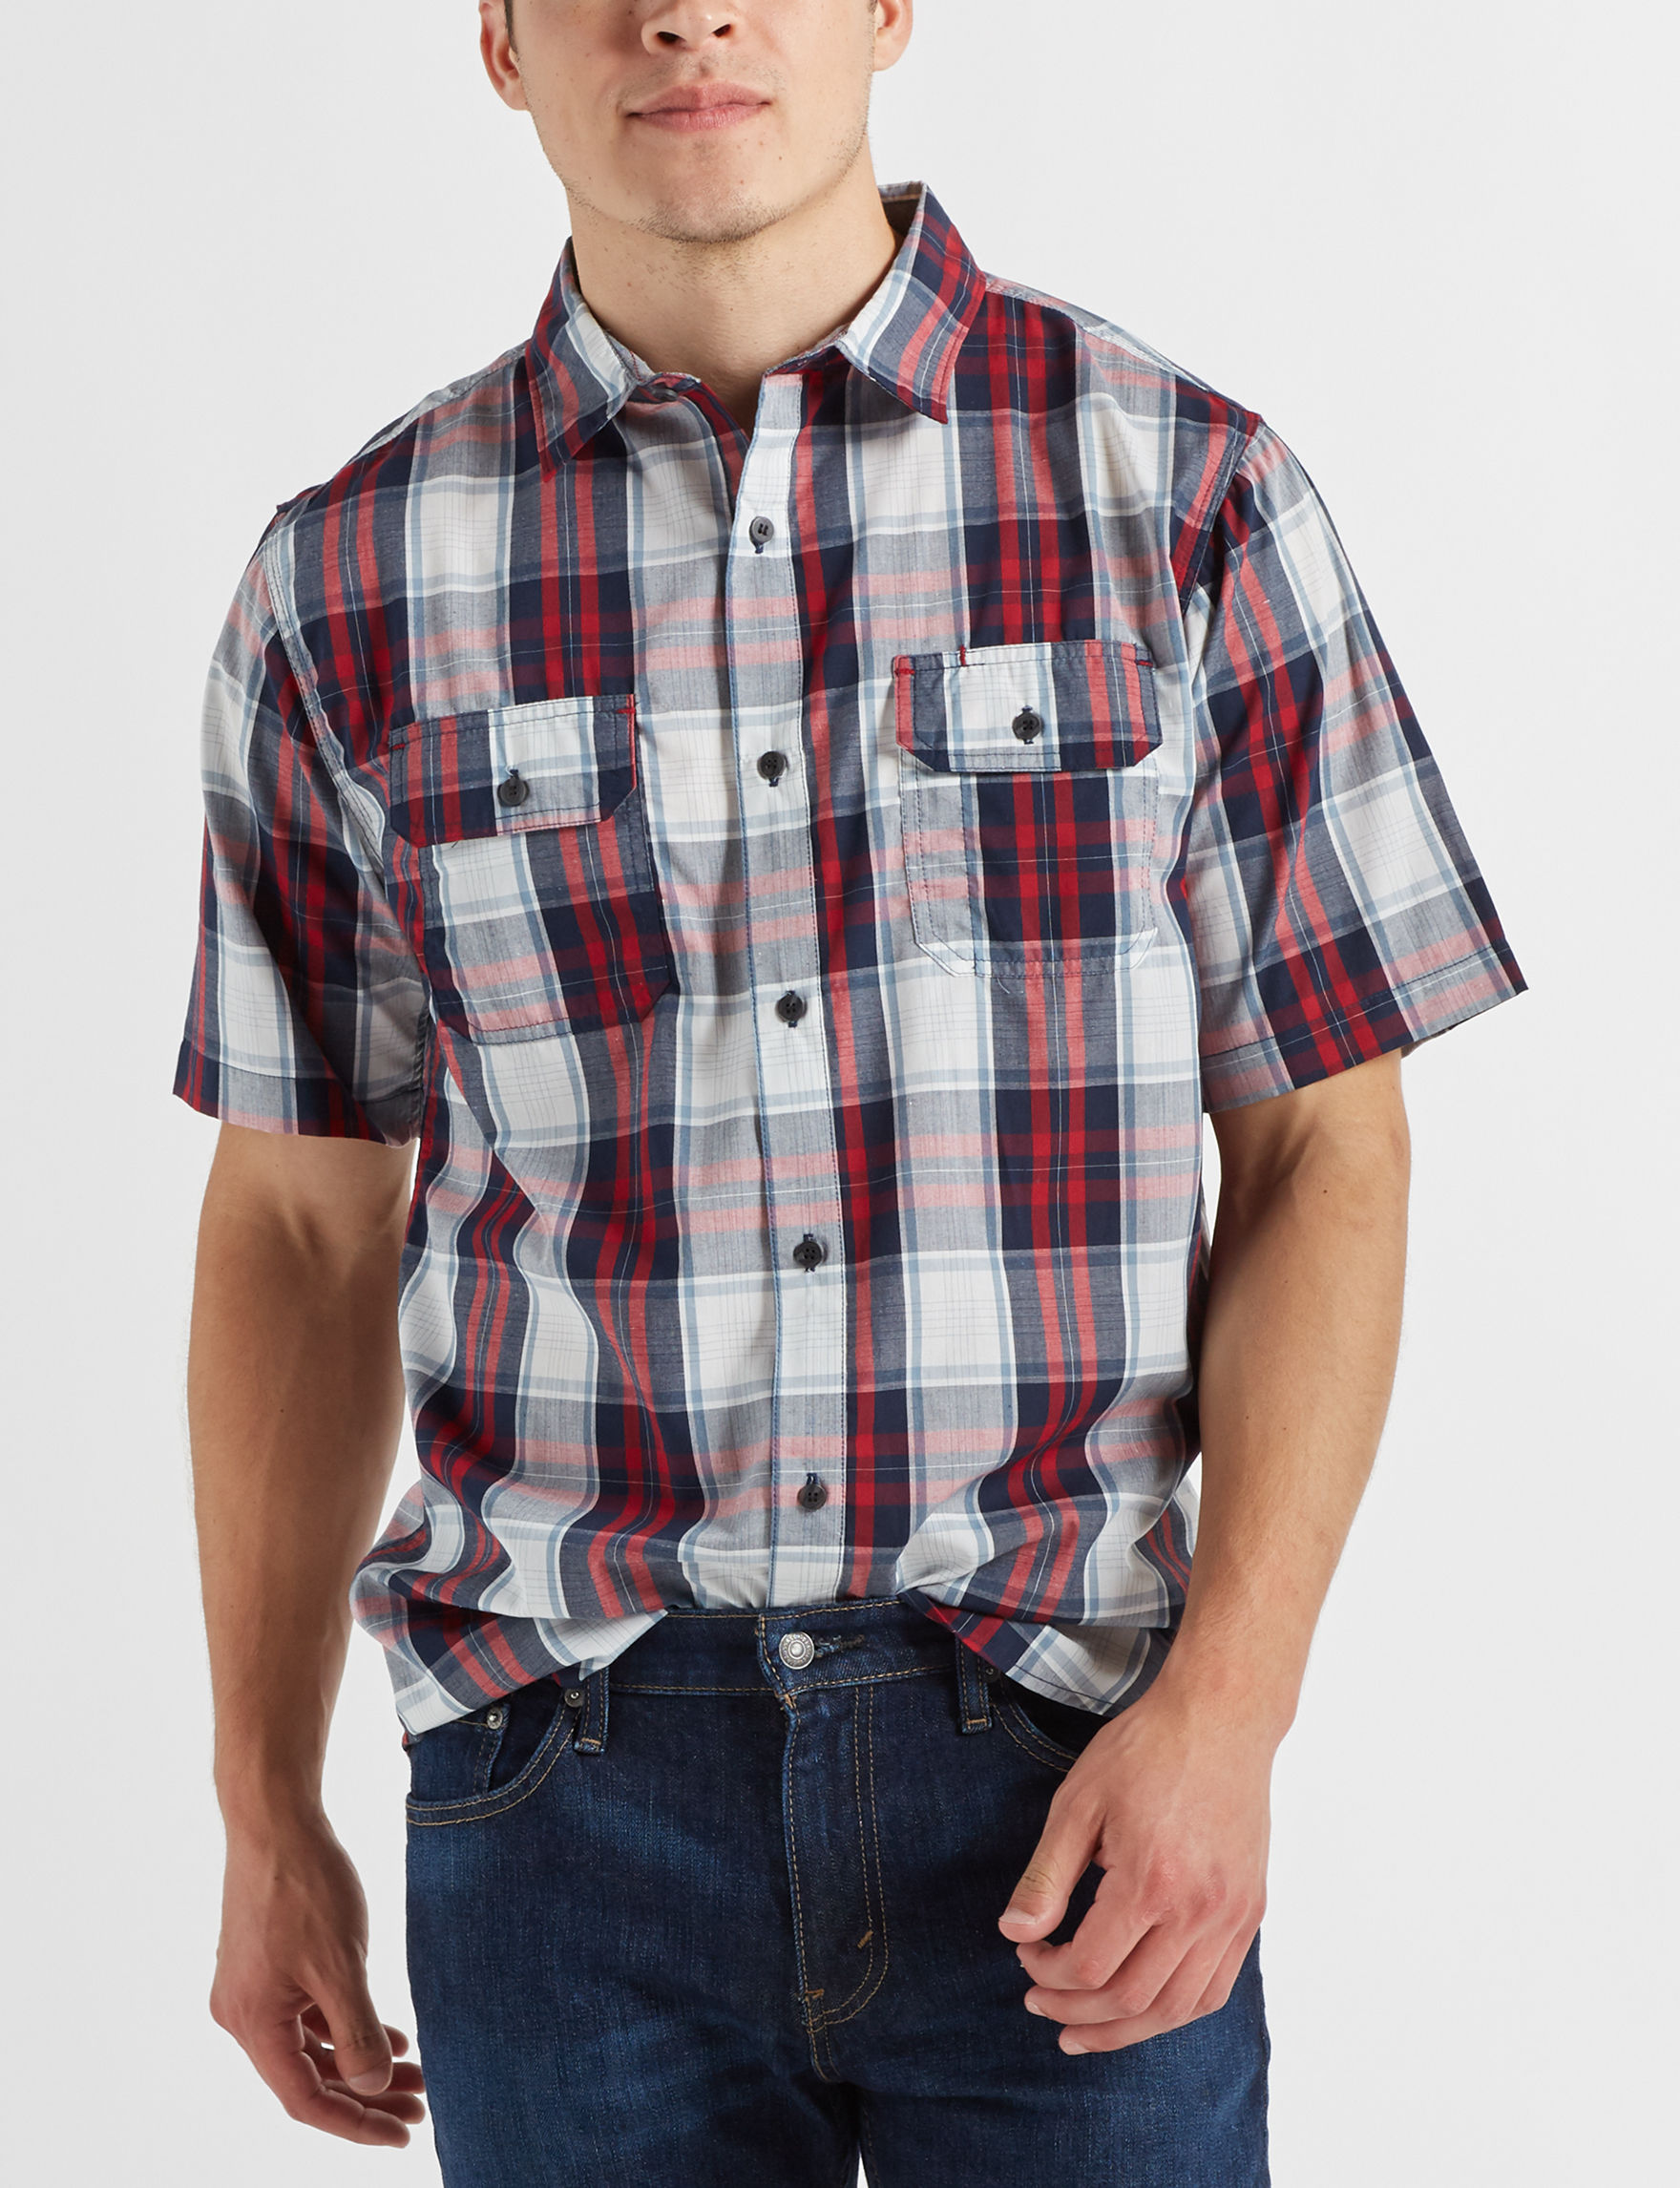 Scope Imports White / Red / Navy Casual Button Down Shirts